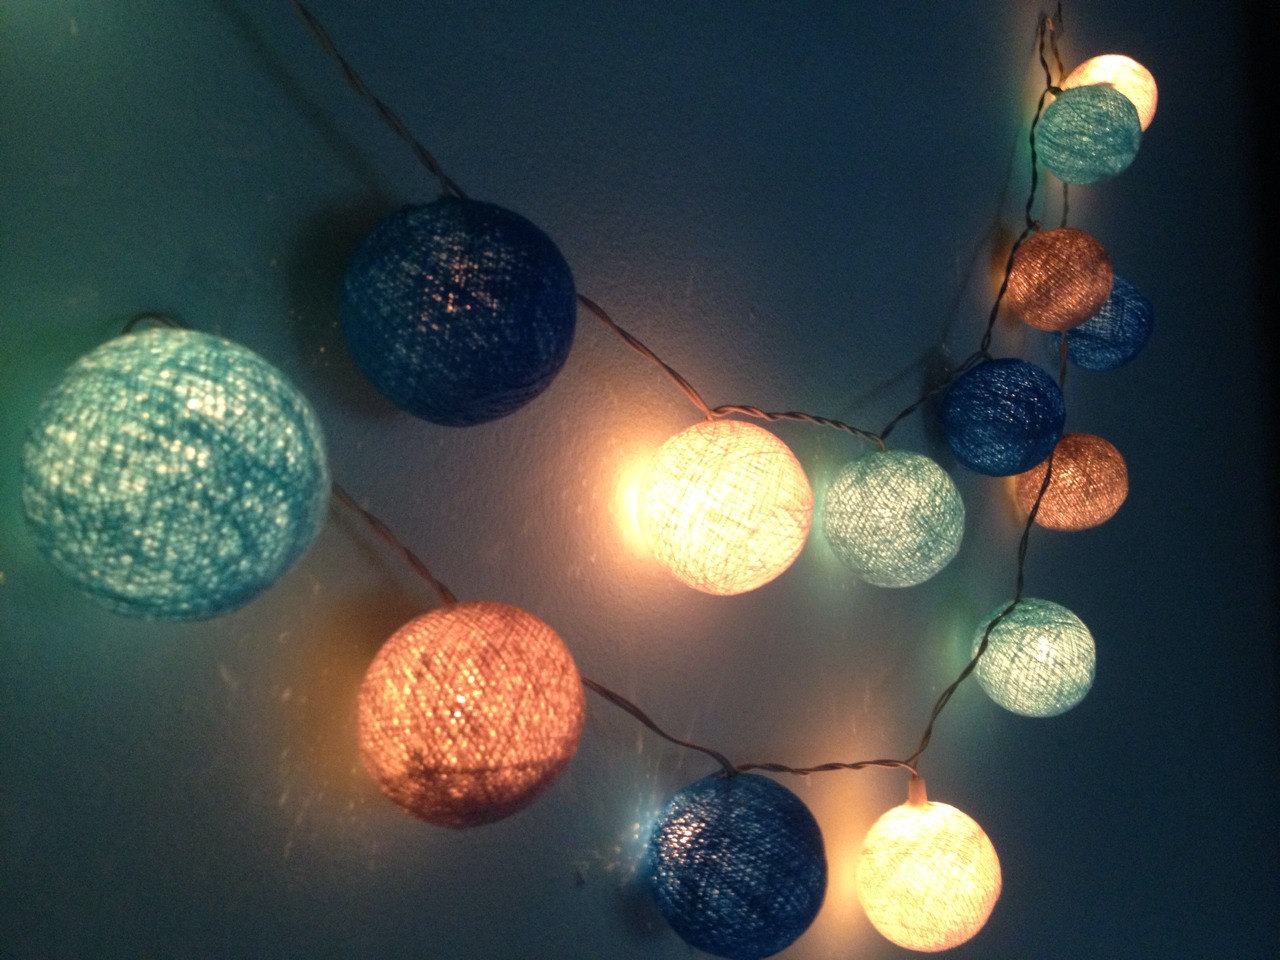 string light in the bedroom playing creativity with